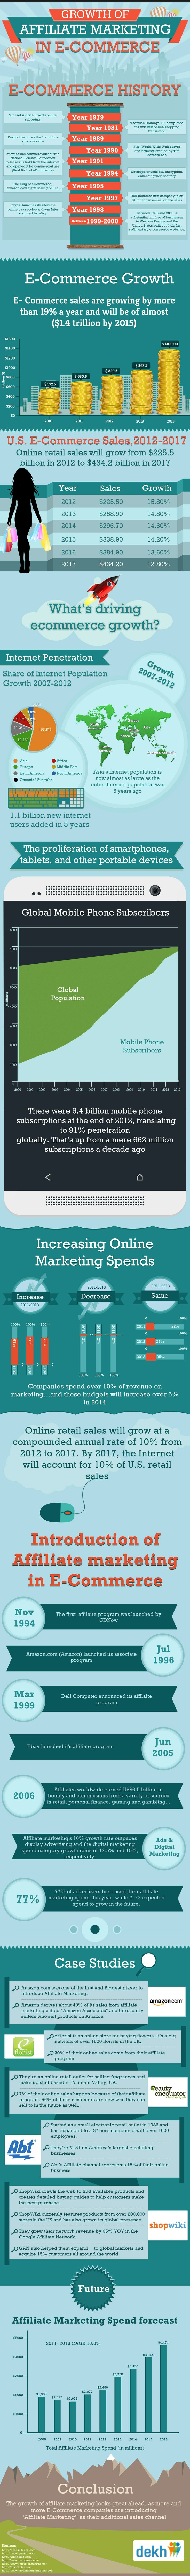 Growth-of-Affiliate-Marketing